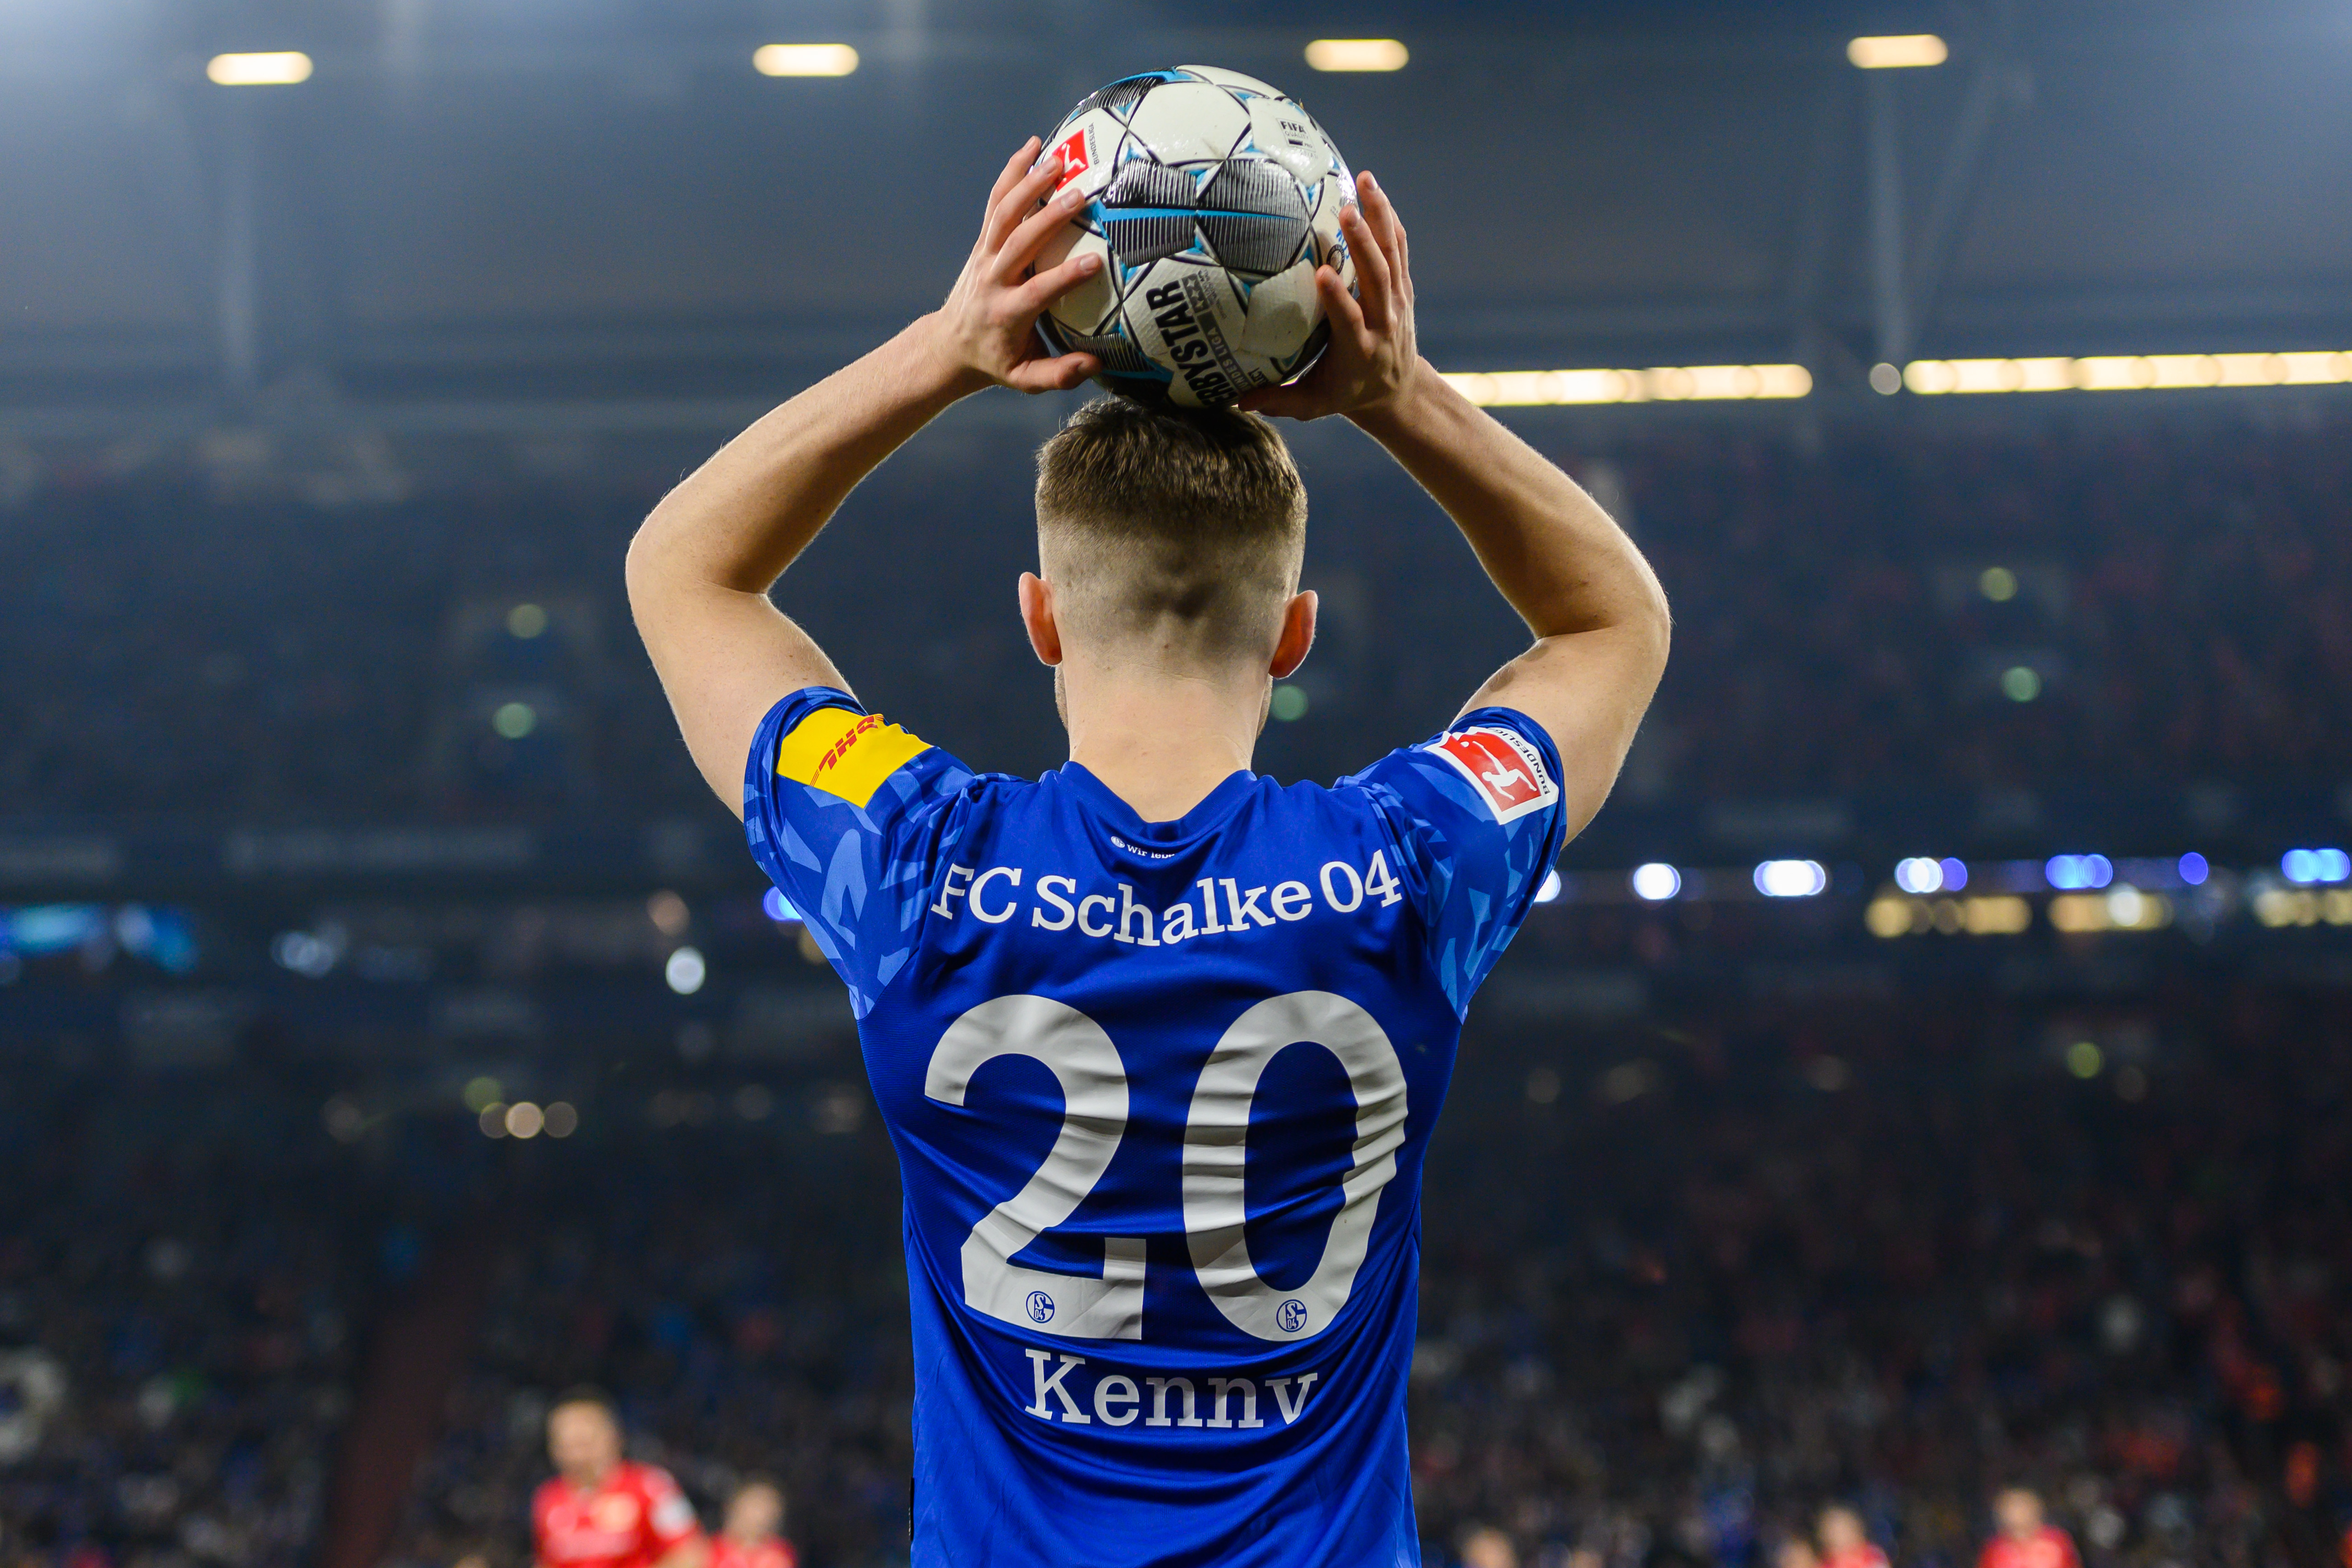 Everton had rejected Schalke's approach to sign Jonjoe Kenny - A star in the making?